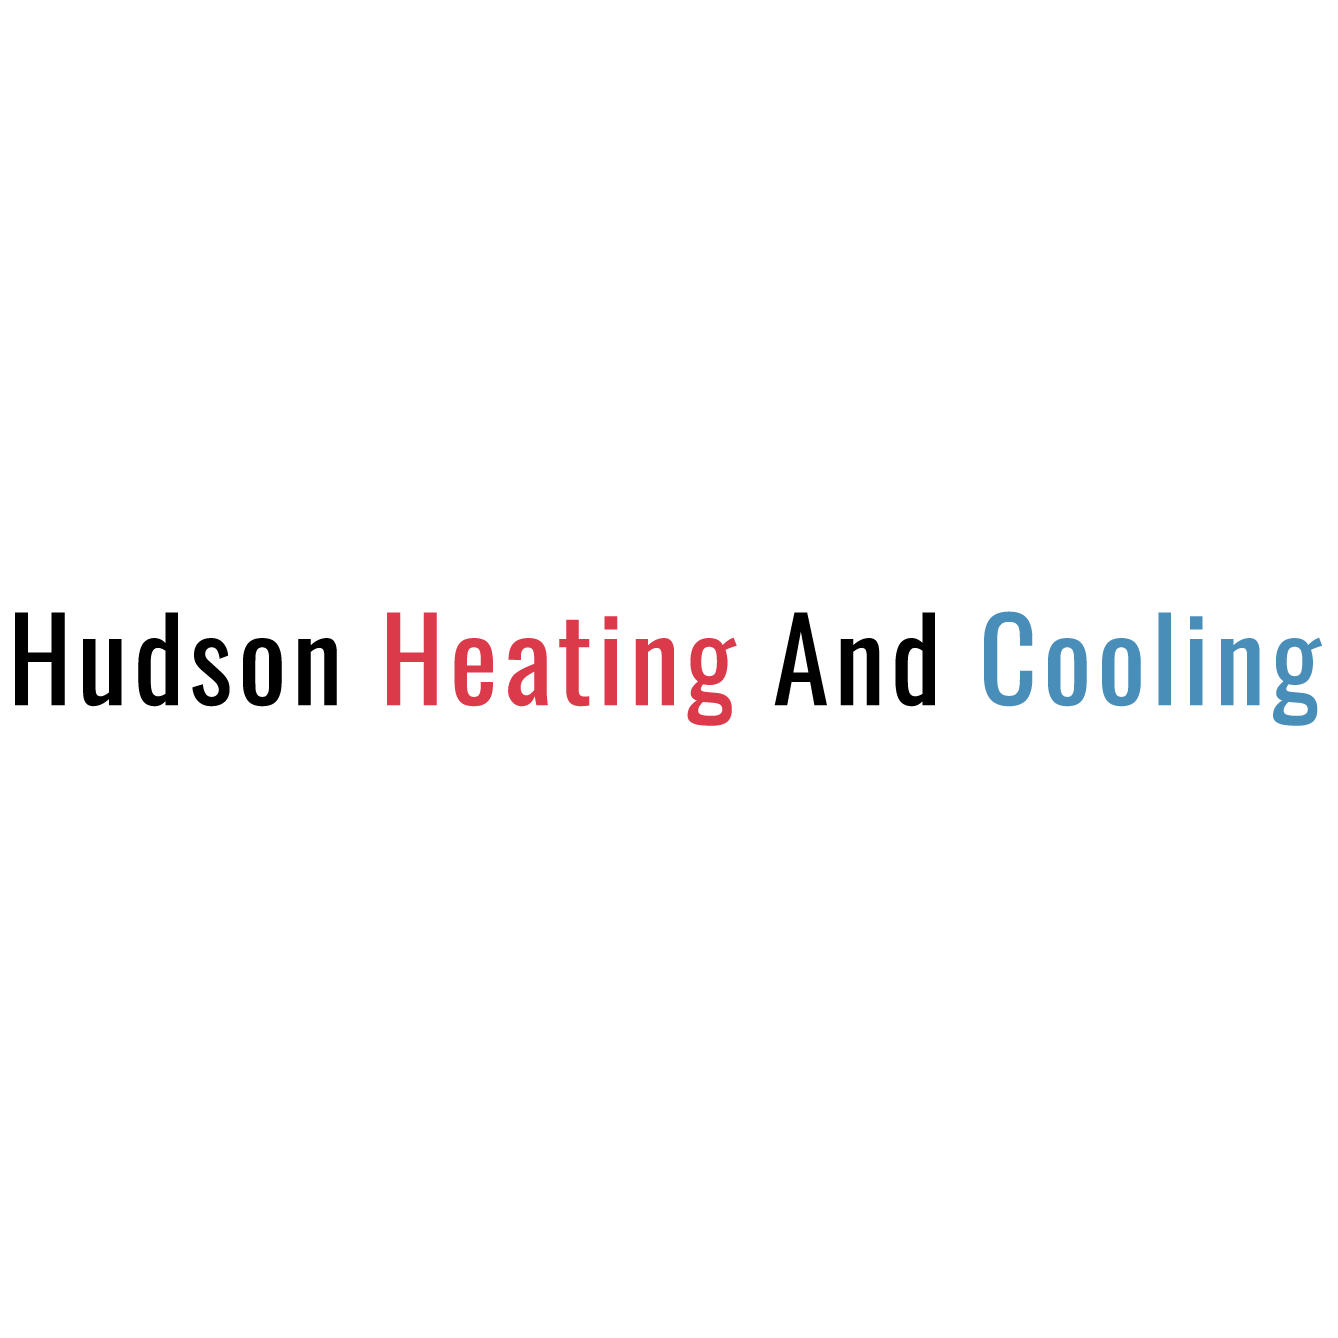 Hudson Heating And Cooling